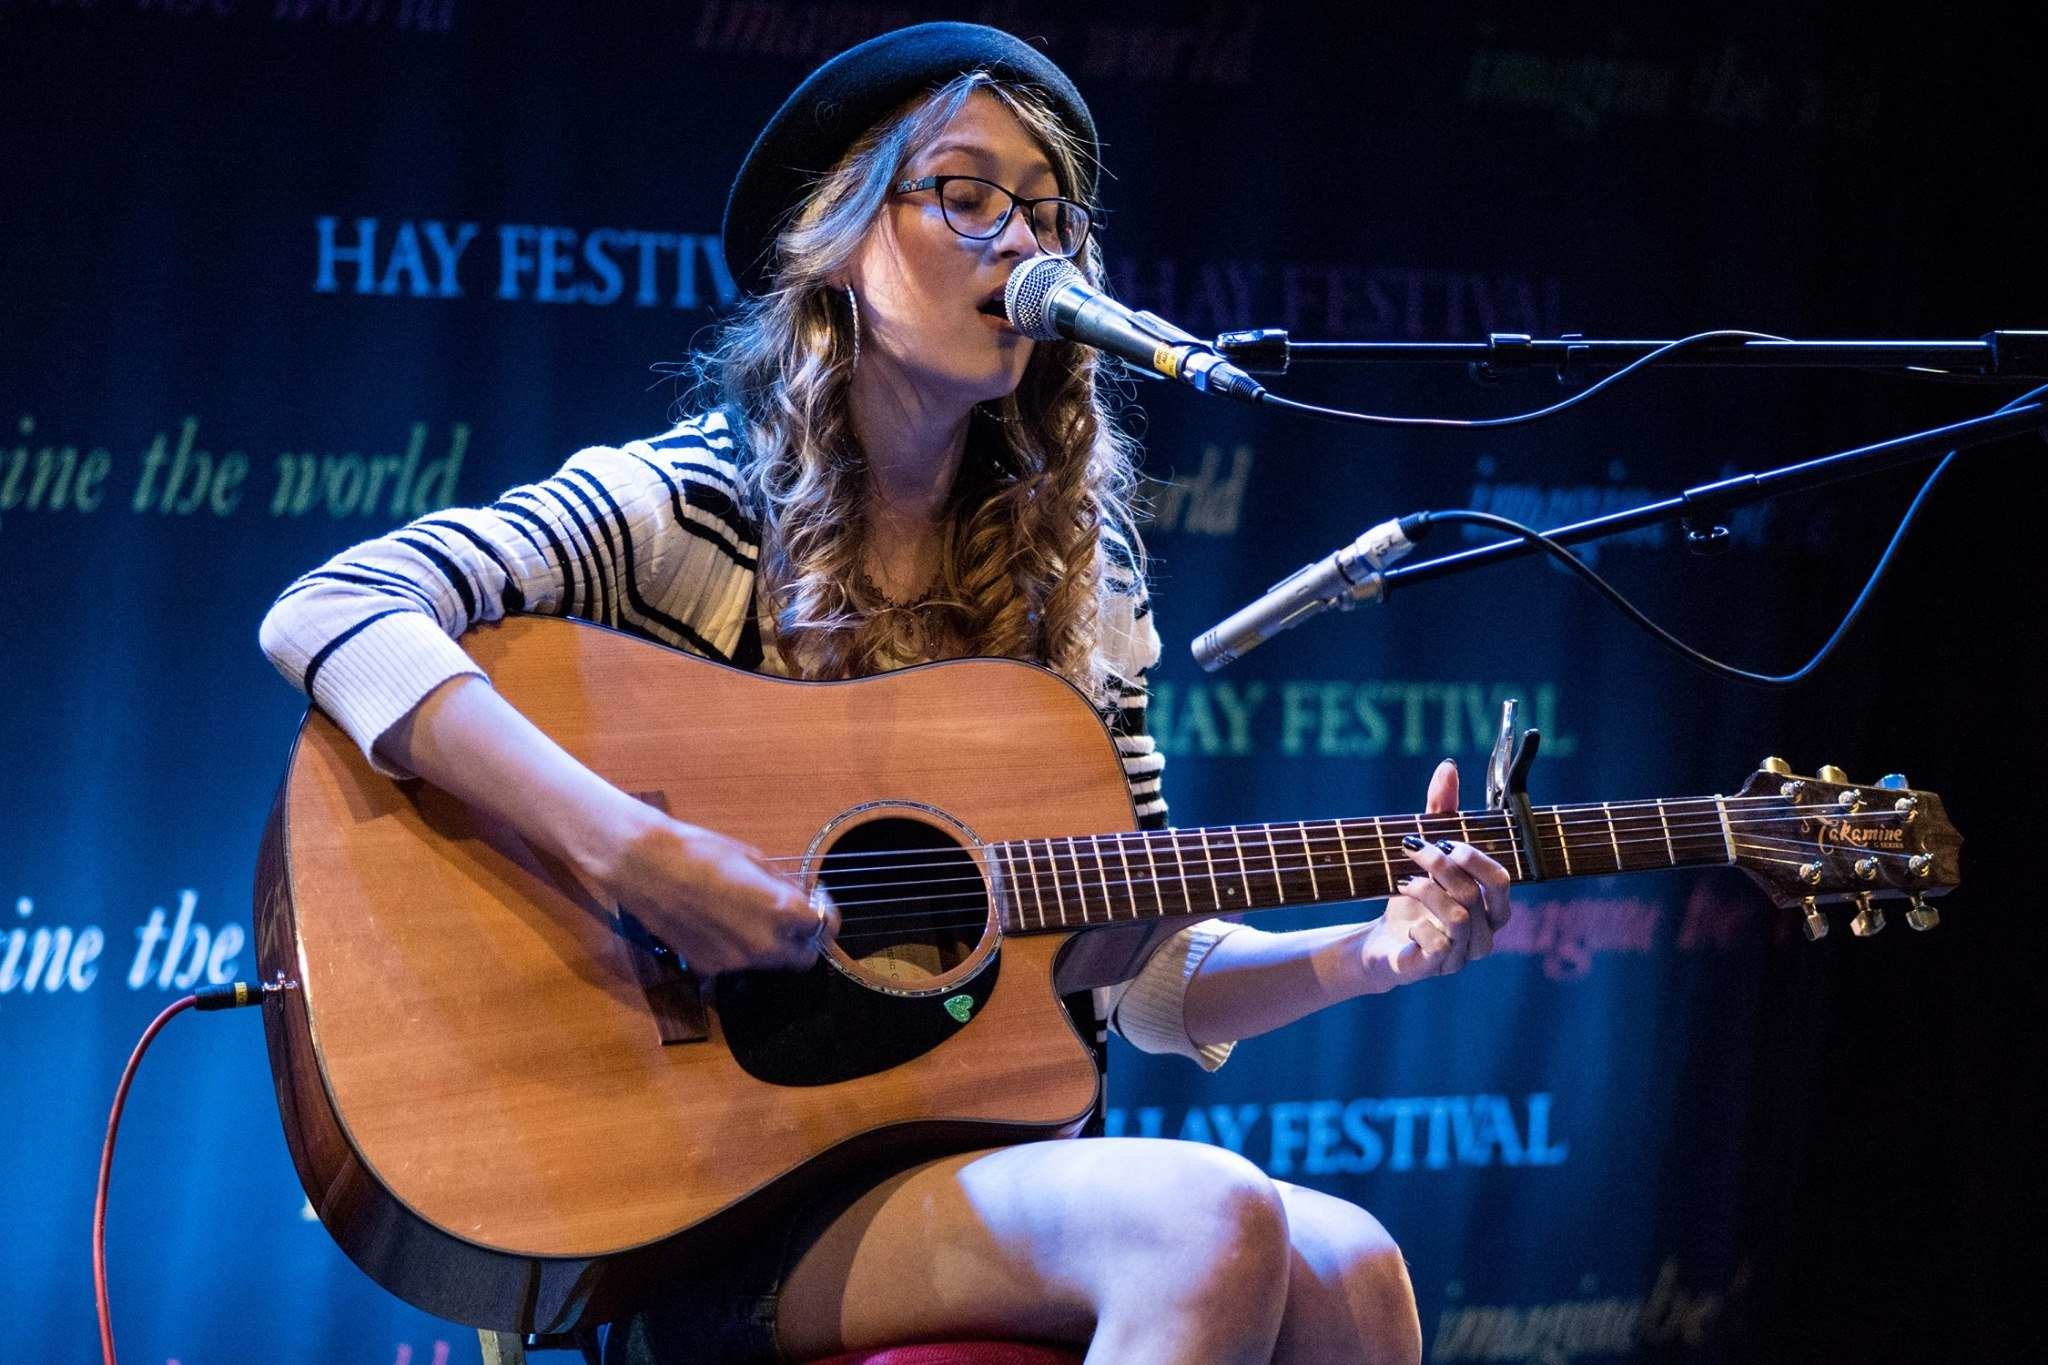 Photography from The Hay Festival by Stephen Meredith